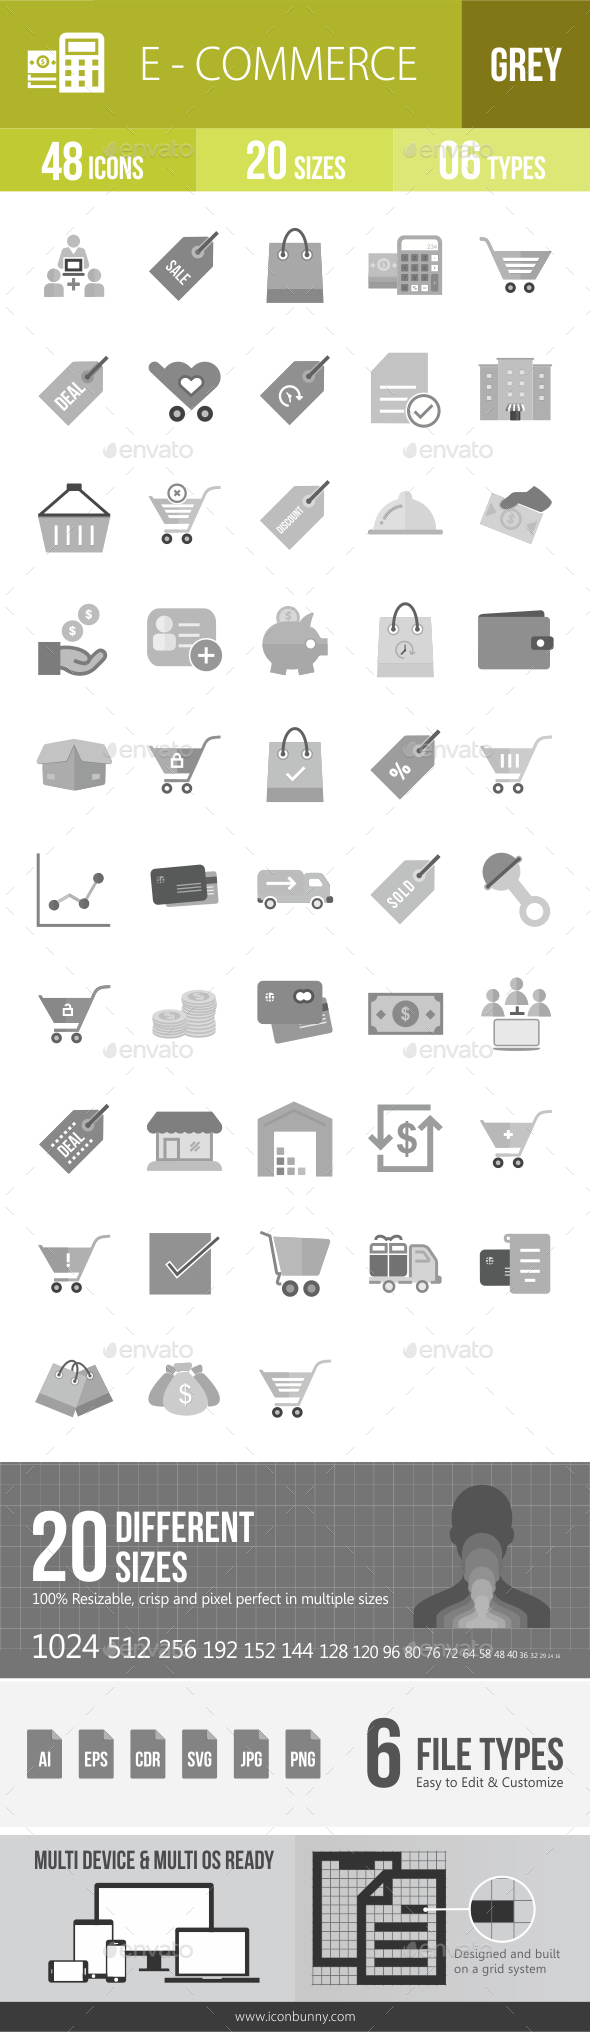 48 Ecommerce Grey Scale Icons - Icons